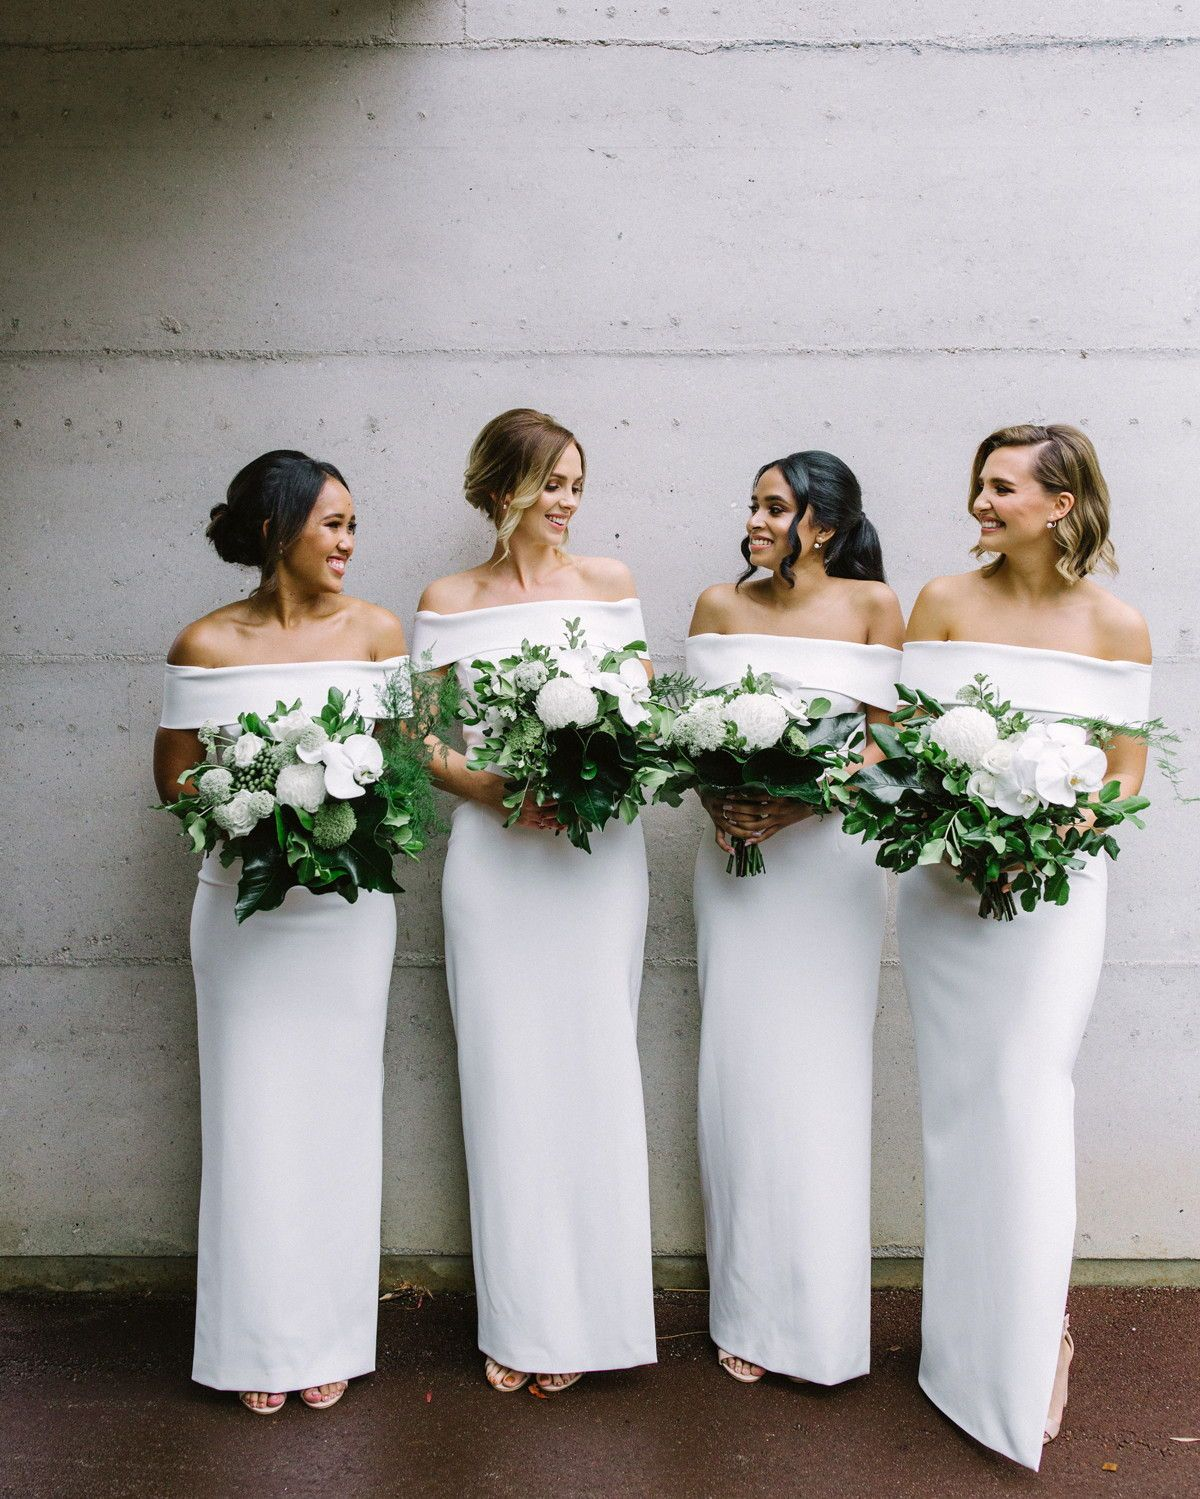 26 Chic Bridal Parties Wearing All White Dresses Bridesmaiddresses Allwhitebridemaiddresses White Bridesmaid Dresses Long Bridesmaid Dresses White Bridesmaid